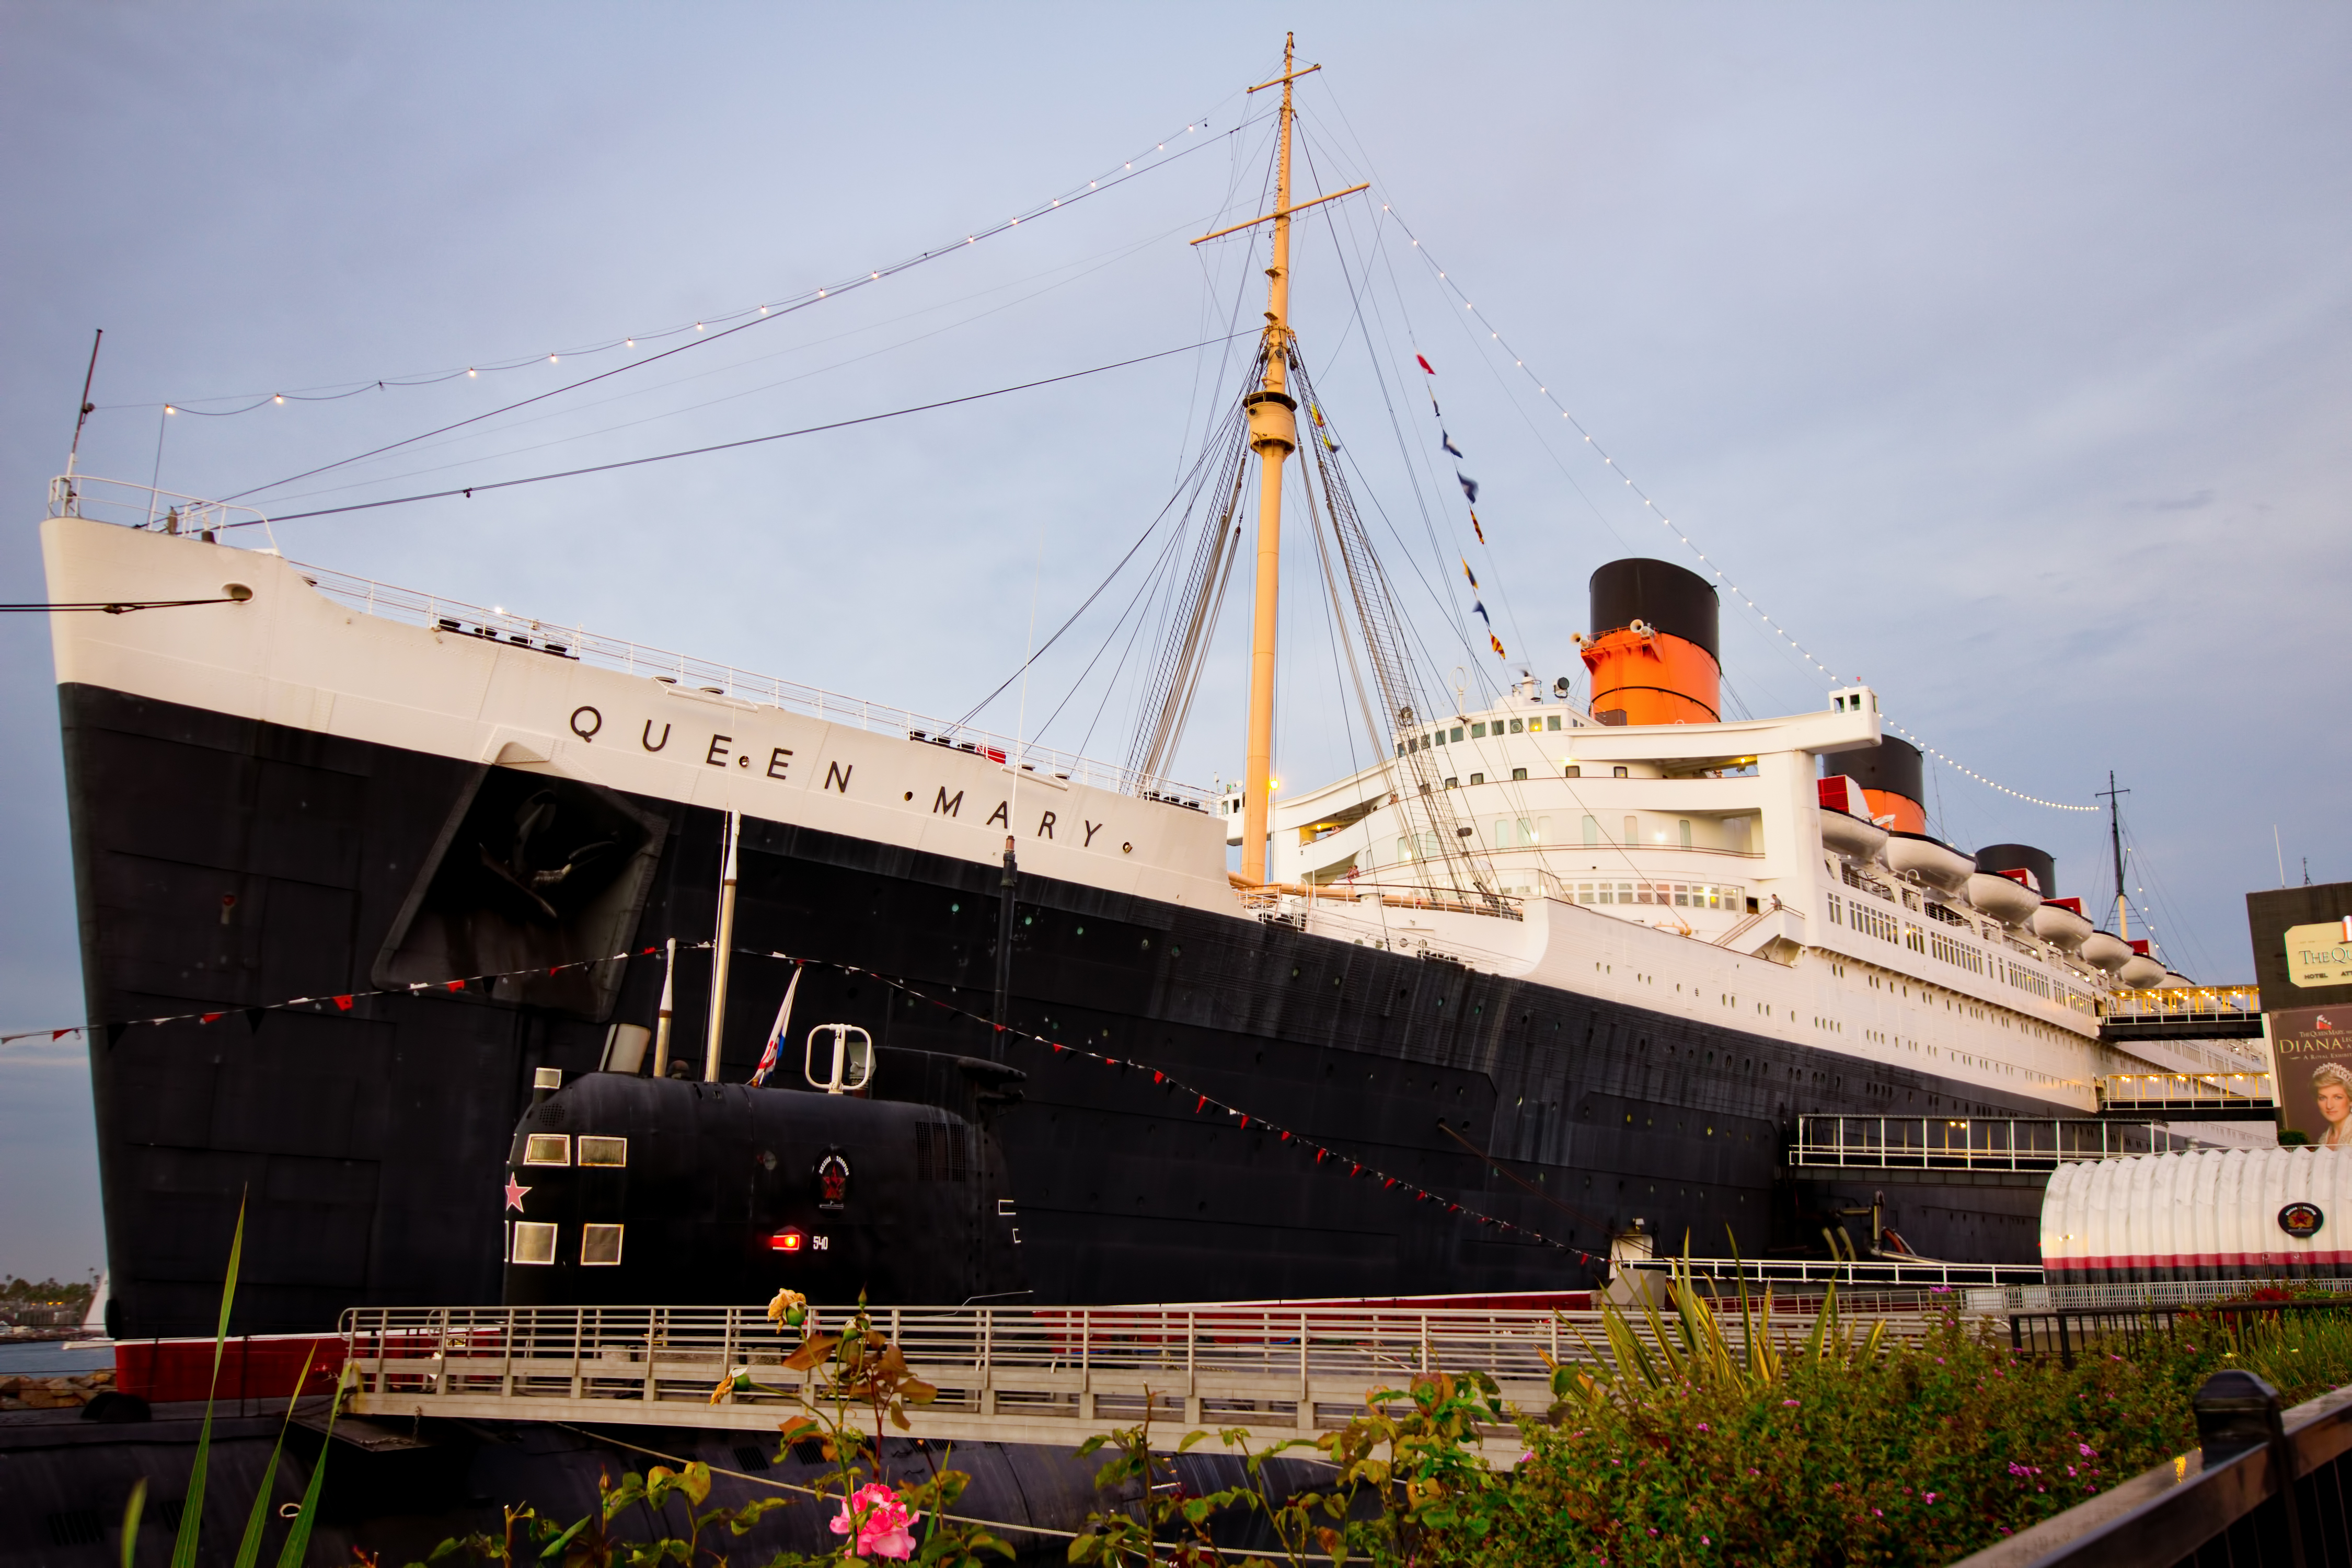 Historic Queen Mary in Long Beach